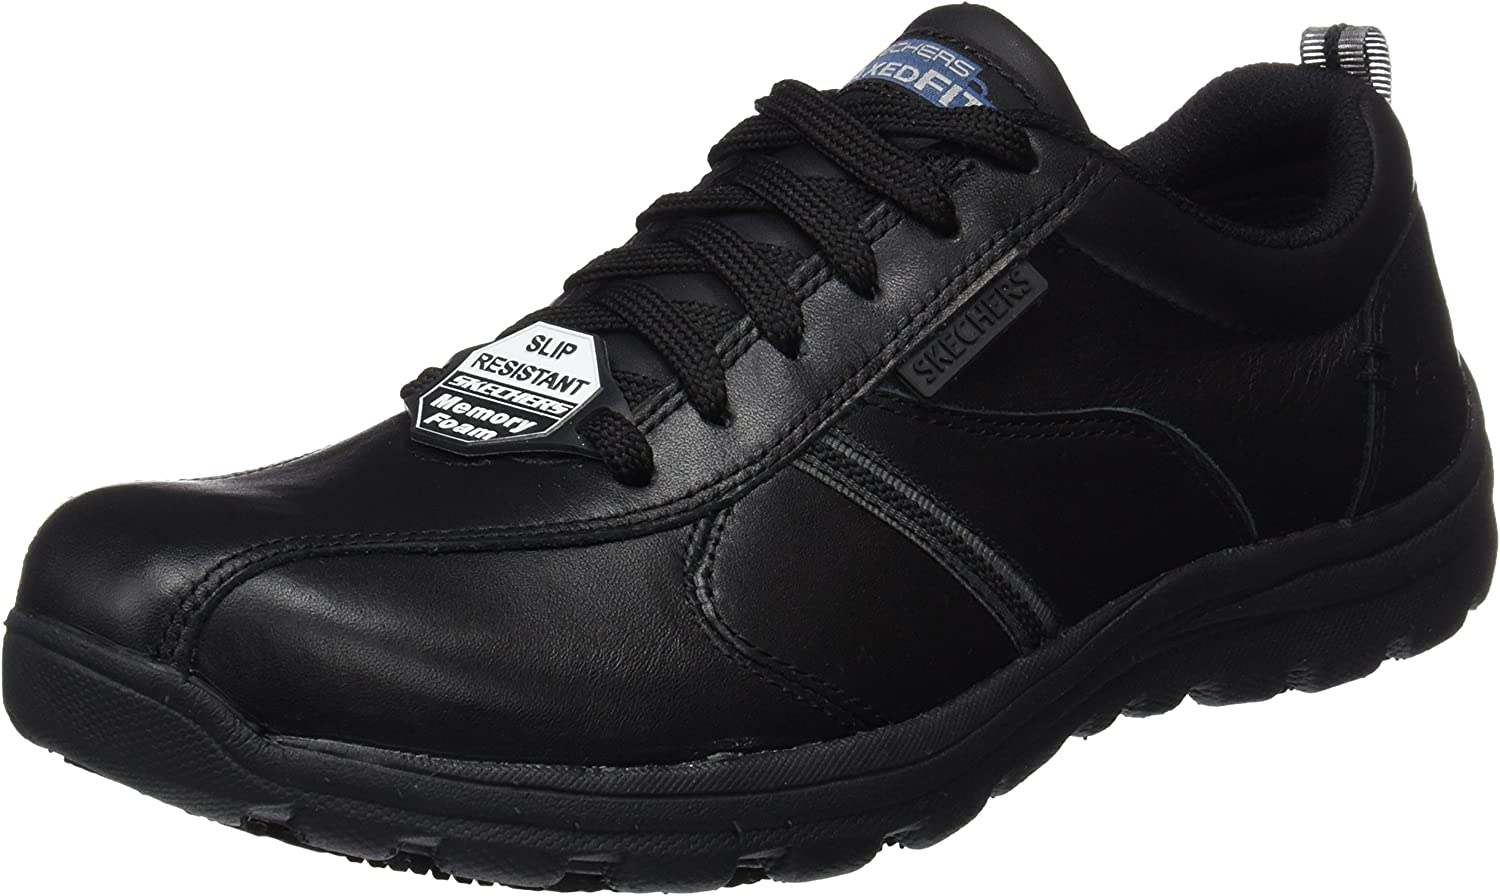 Skechers Mens Hobber Frat Slip Resistant Lace Up Work shoes Black Size UK 6 EU 39.5